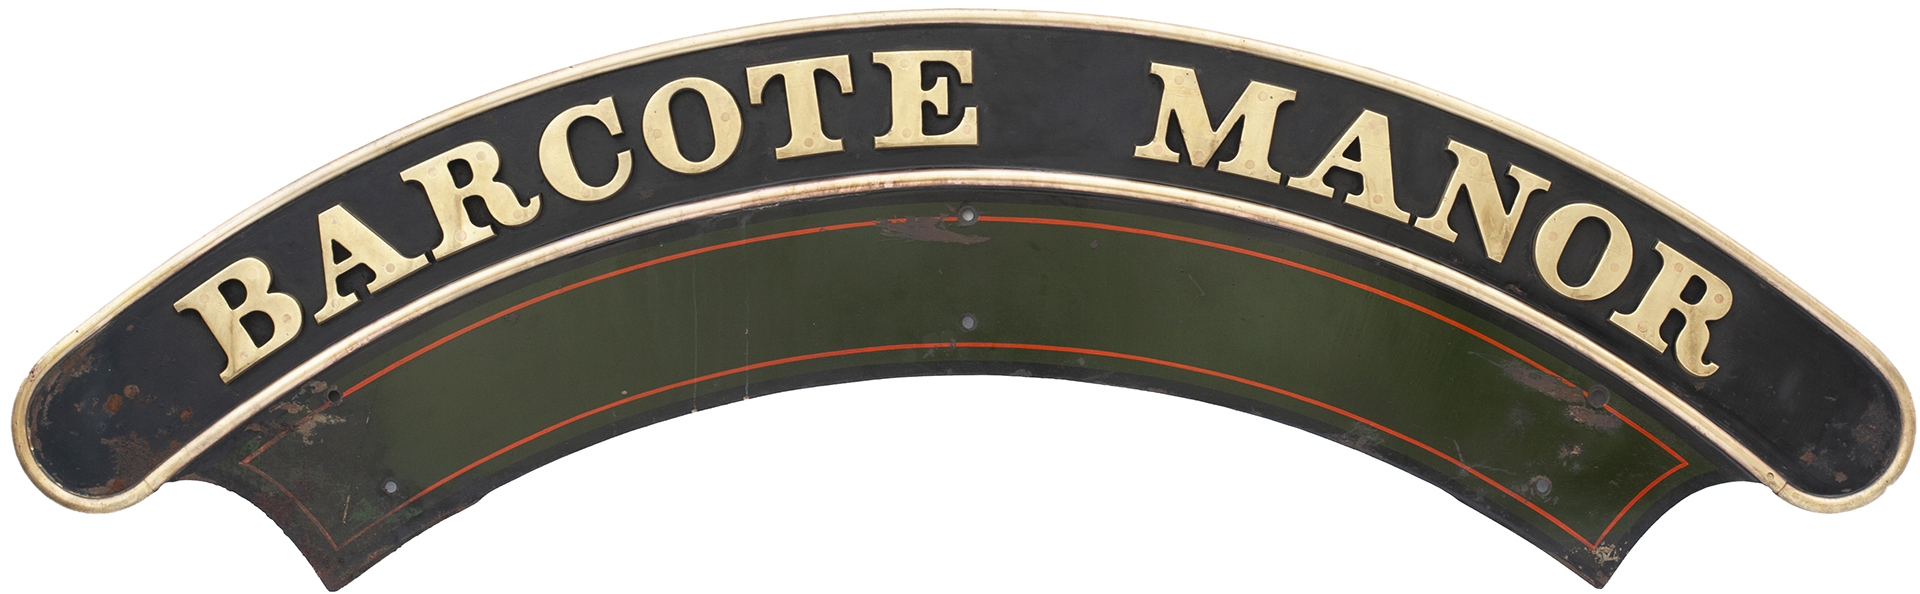 Nameplate BARCOTE MANOR Ex GWR Collett Manor Class